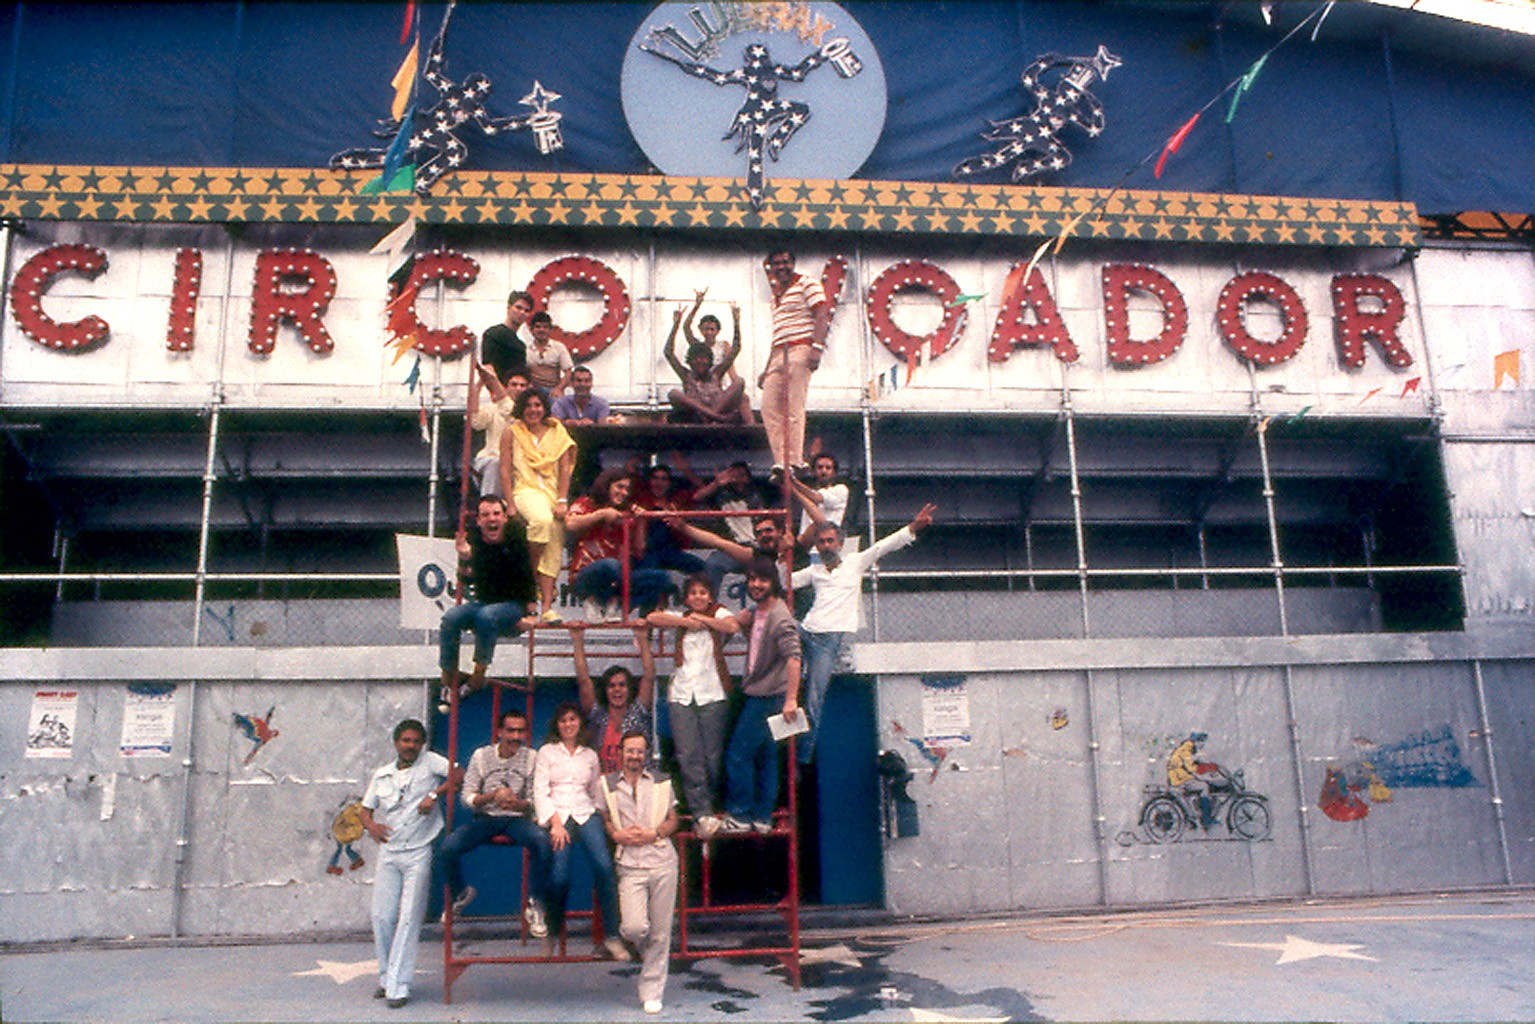 equipe circo voador lapa 1985 por marcio rm 5 z Download A Farra do Circo Dublado AVI Torrent + RMVB Legendado